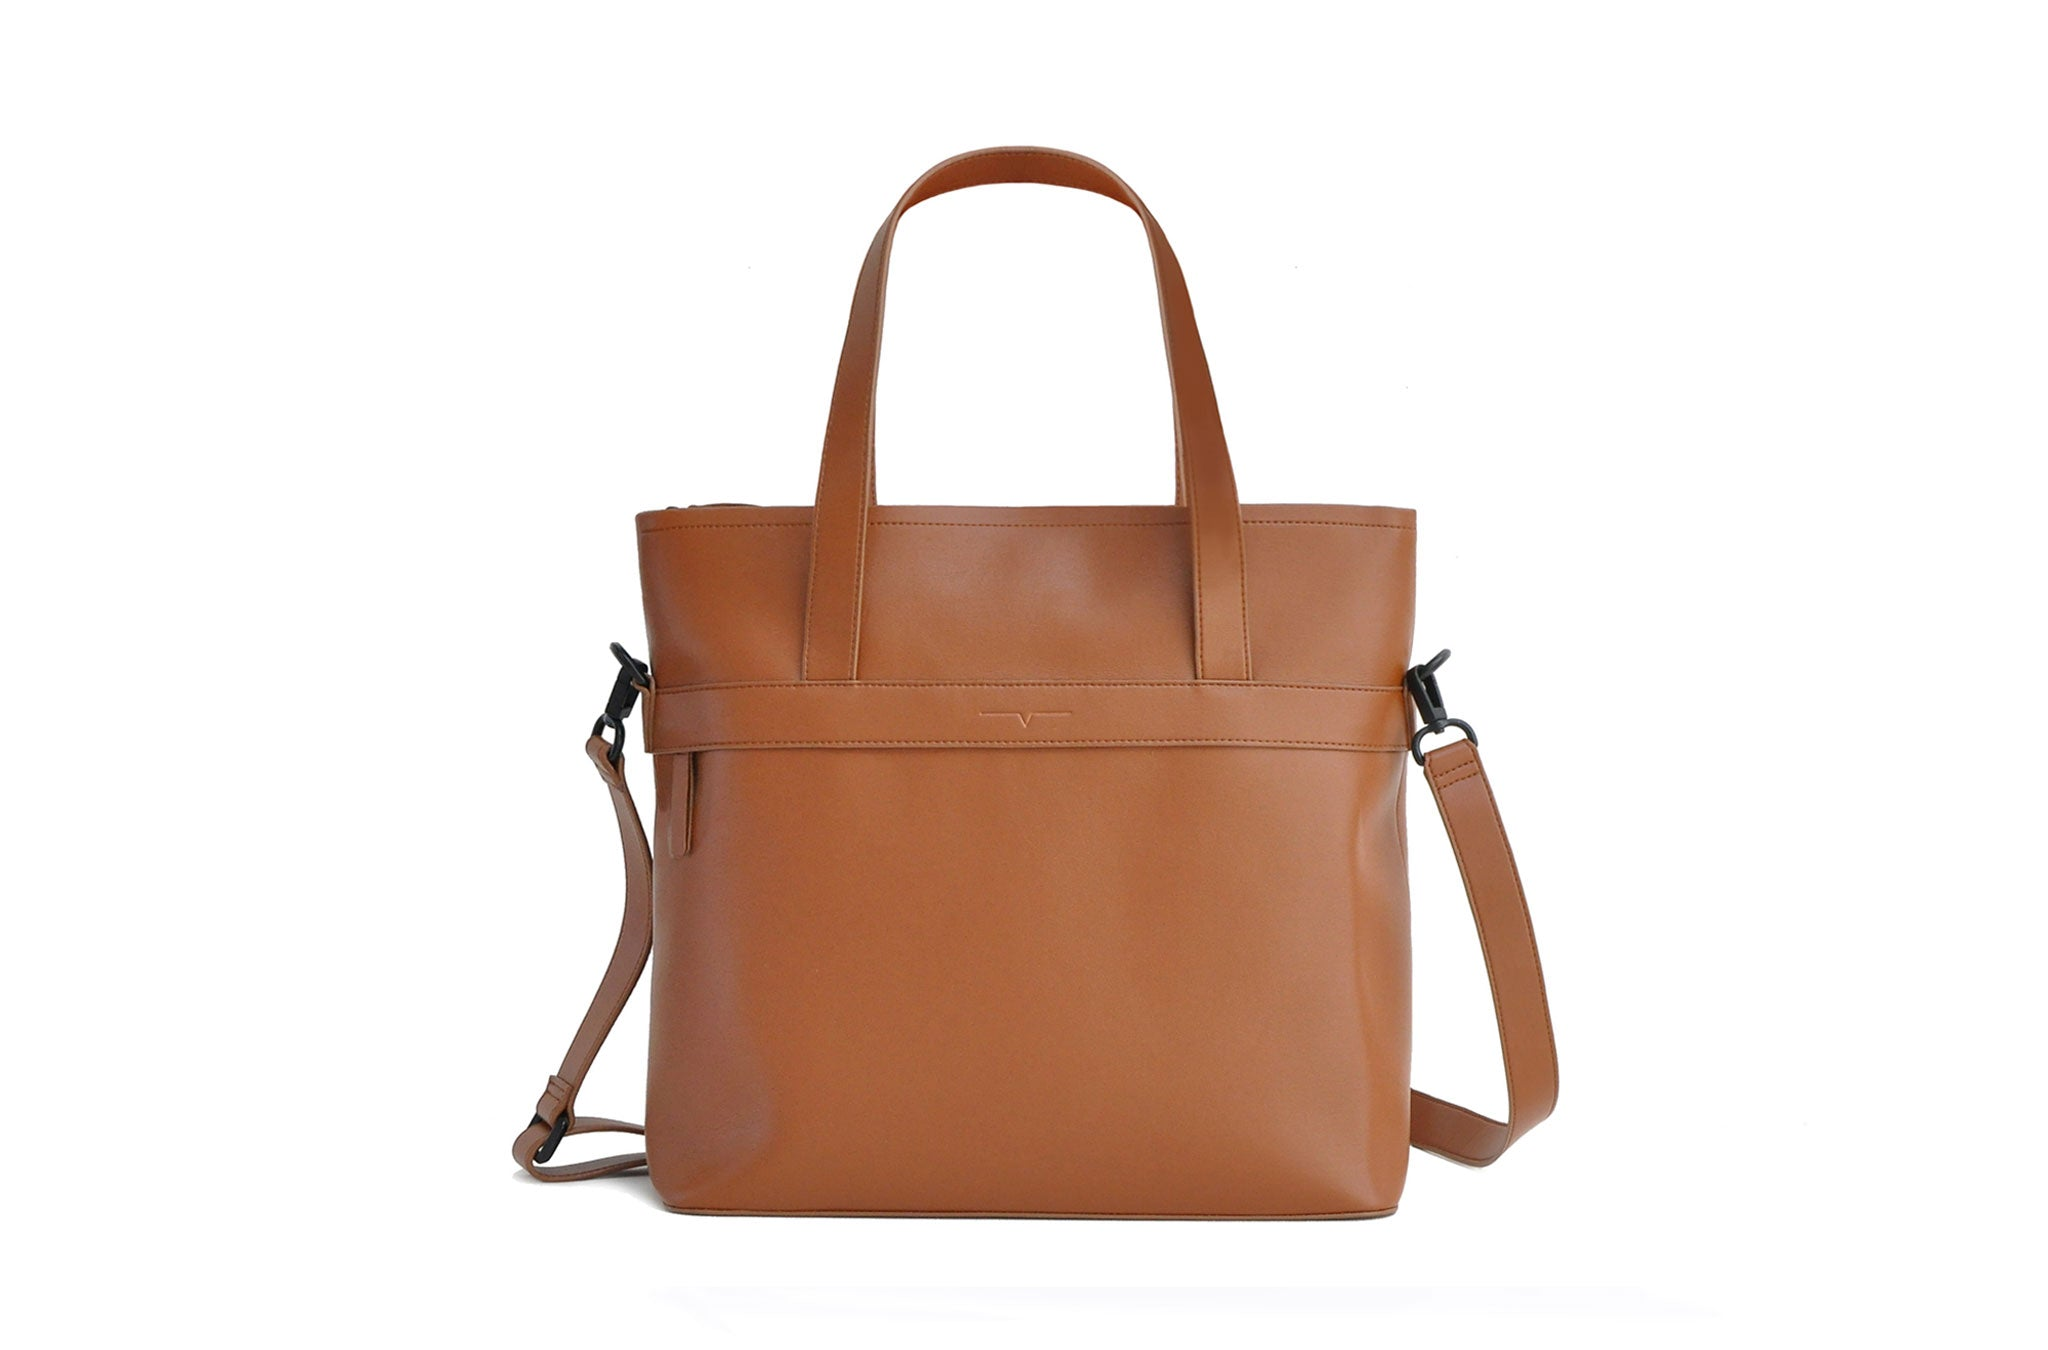 The Zipper Tote in Technik-Leather in Cognac